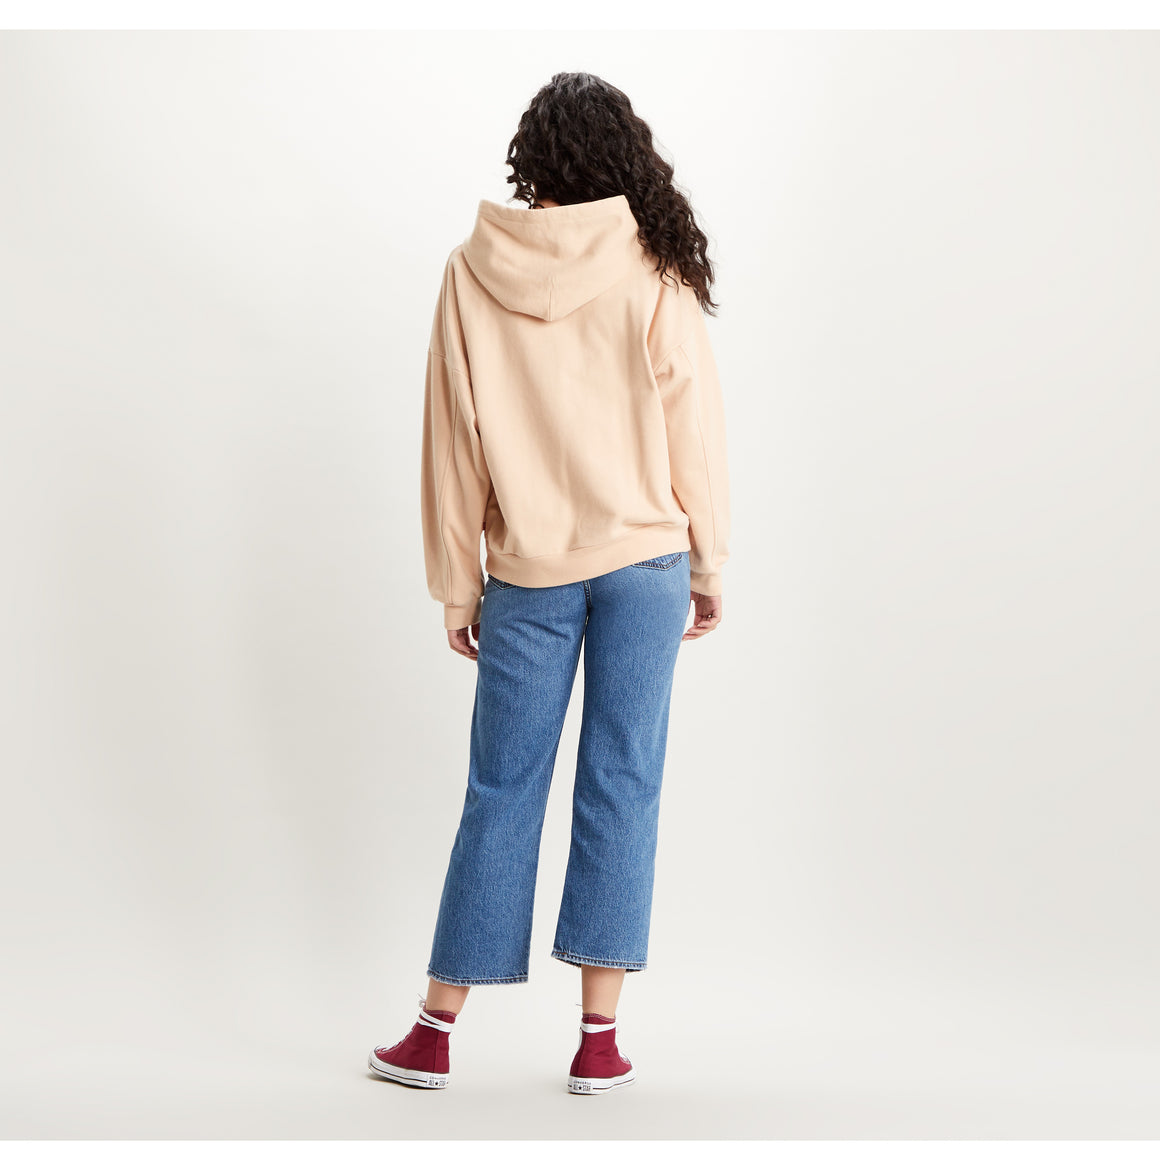 Graphic Serif Hoodie 2020 for Women in Toasted Almond